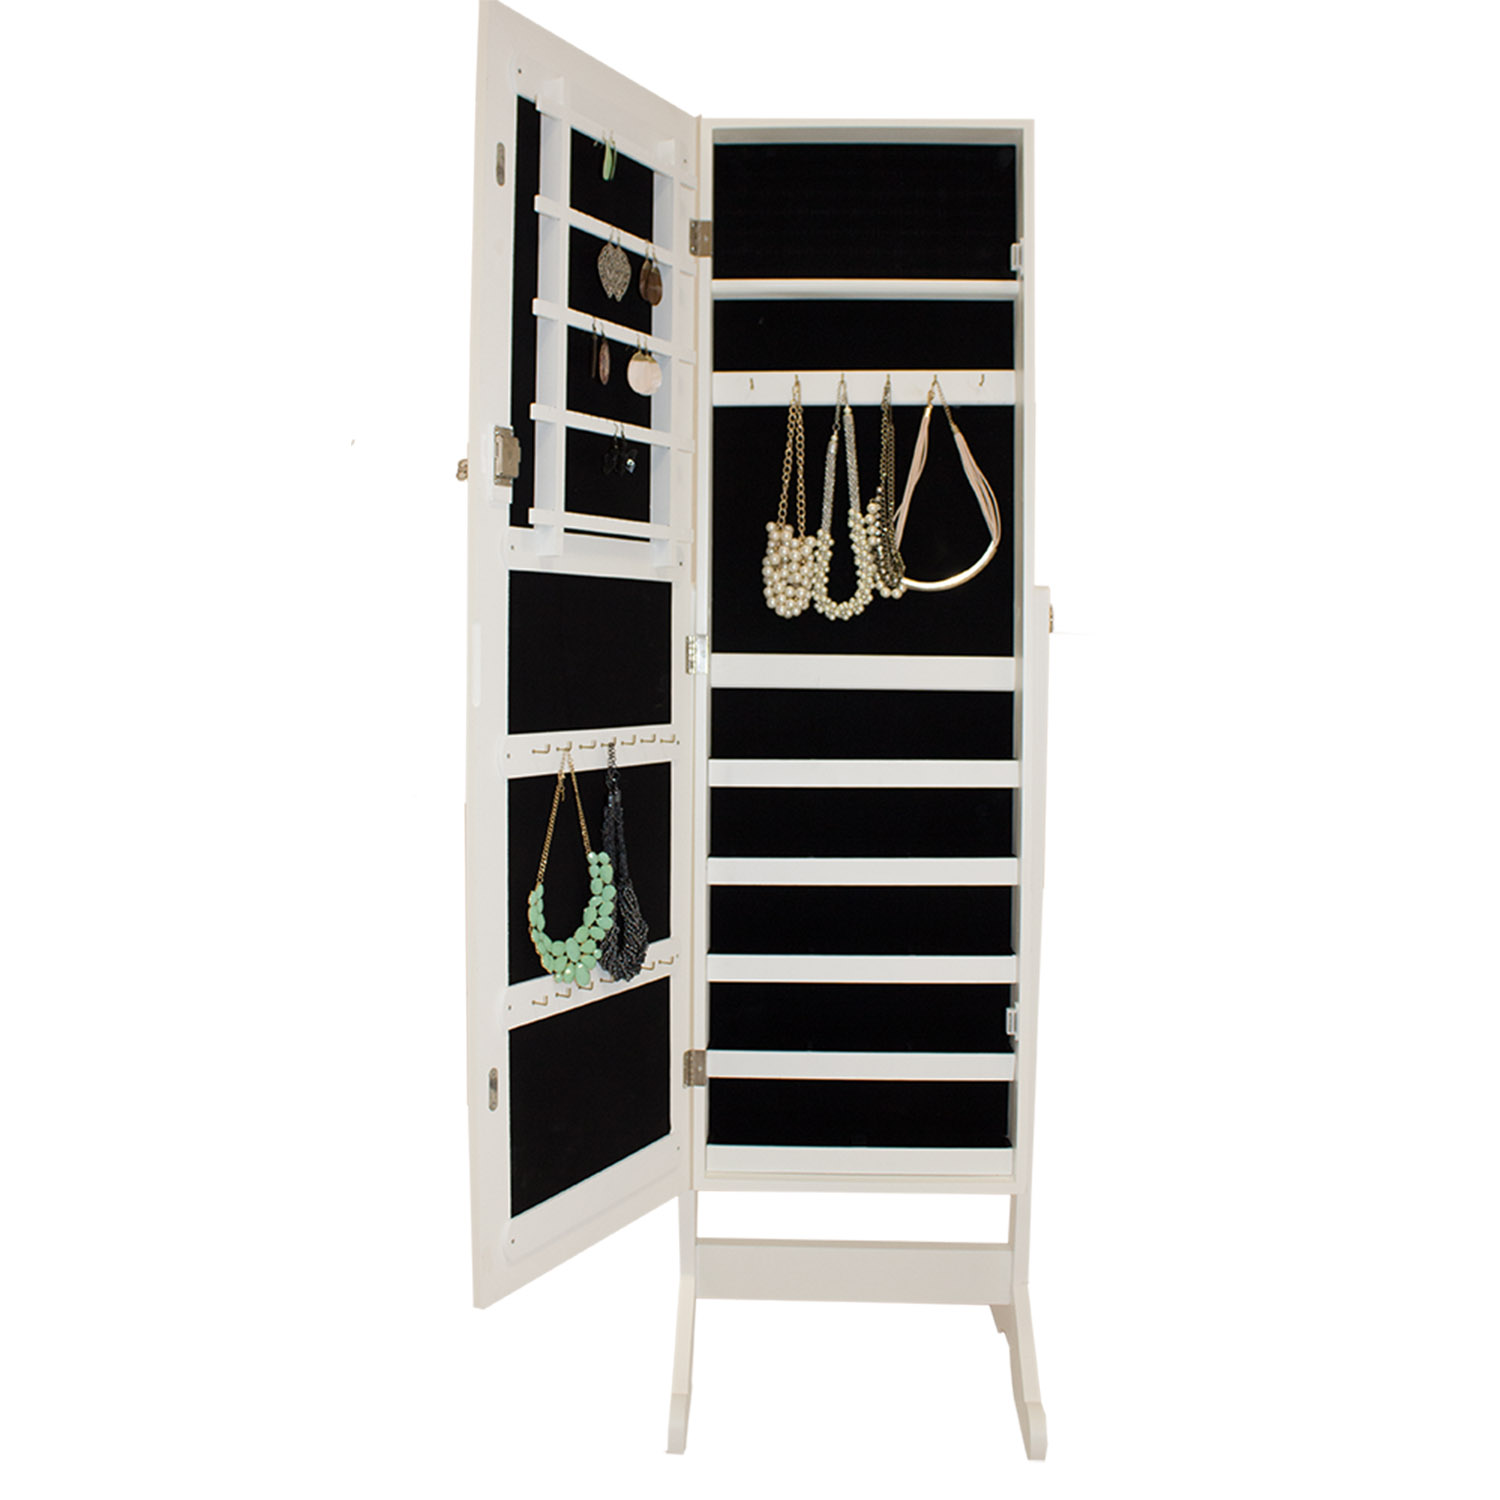 schmuckschrank spiegelschrank schmuckkommode standspiegel schmuck weiss neu ebay. Black Bedroom Furniture Sets. Home Design Ideas